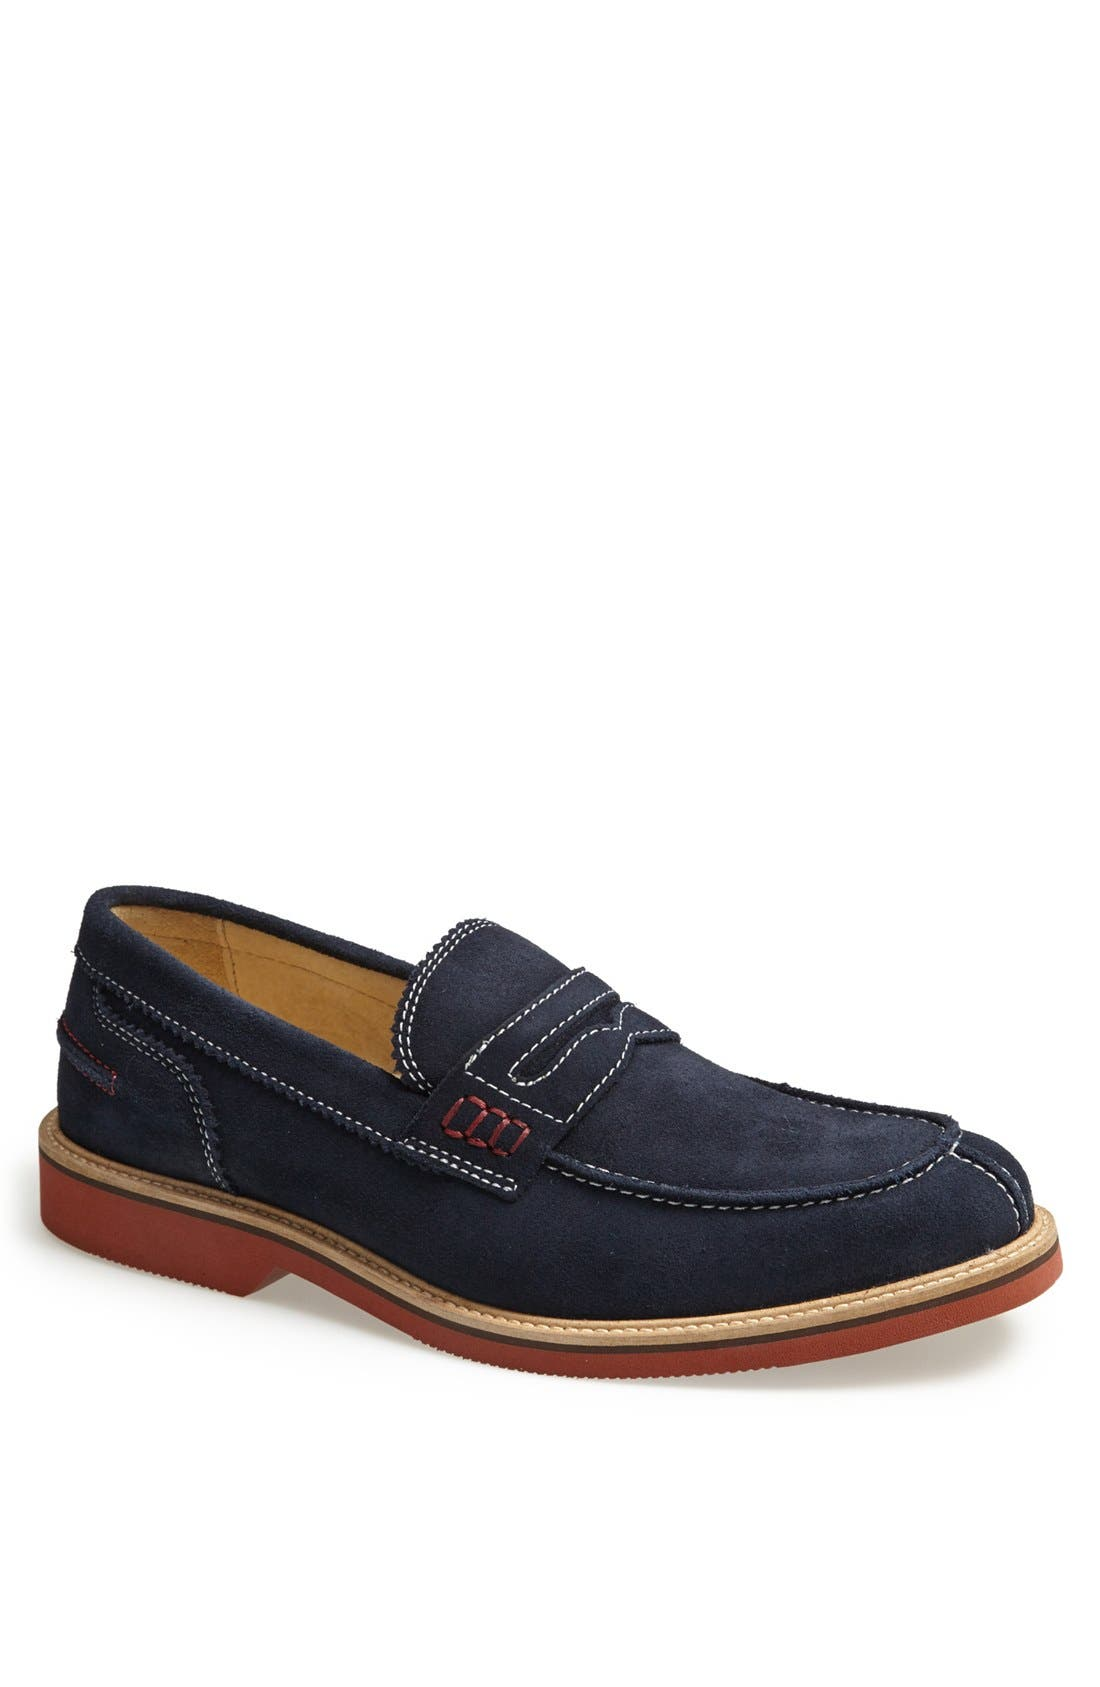 Alternate Image 1 Selected - 1901 'Colby' Penny Loafer (Men)